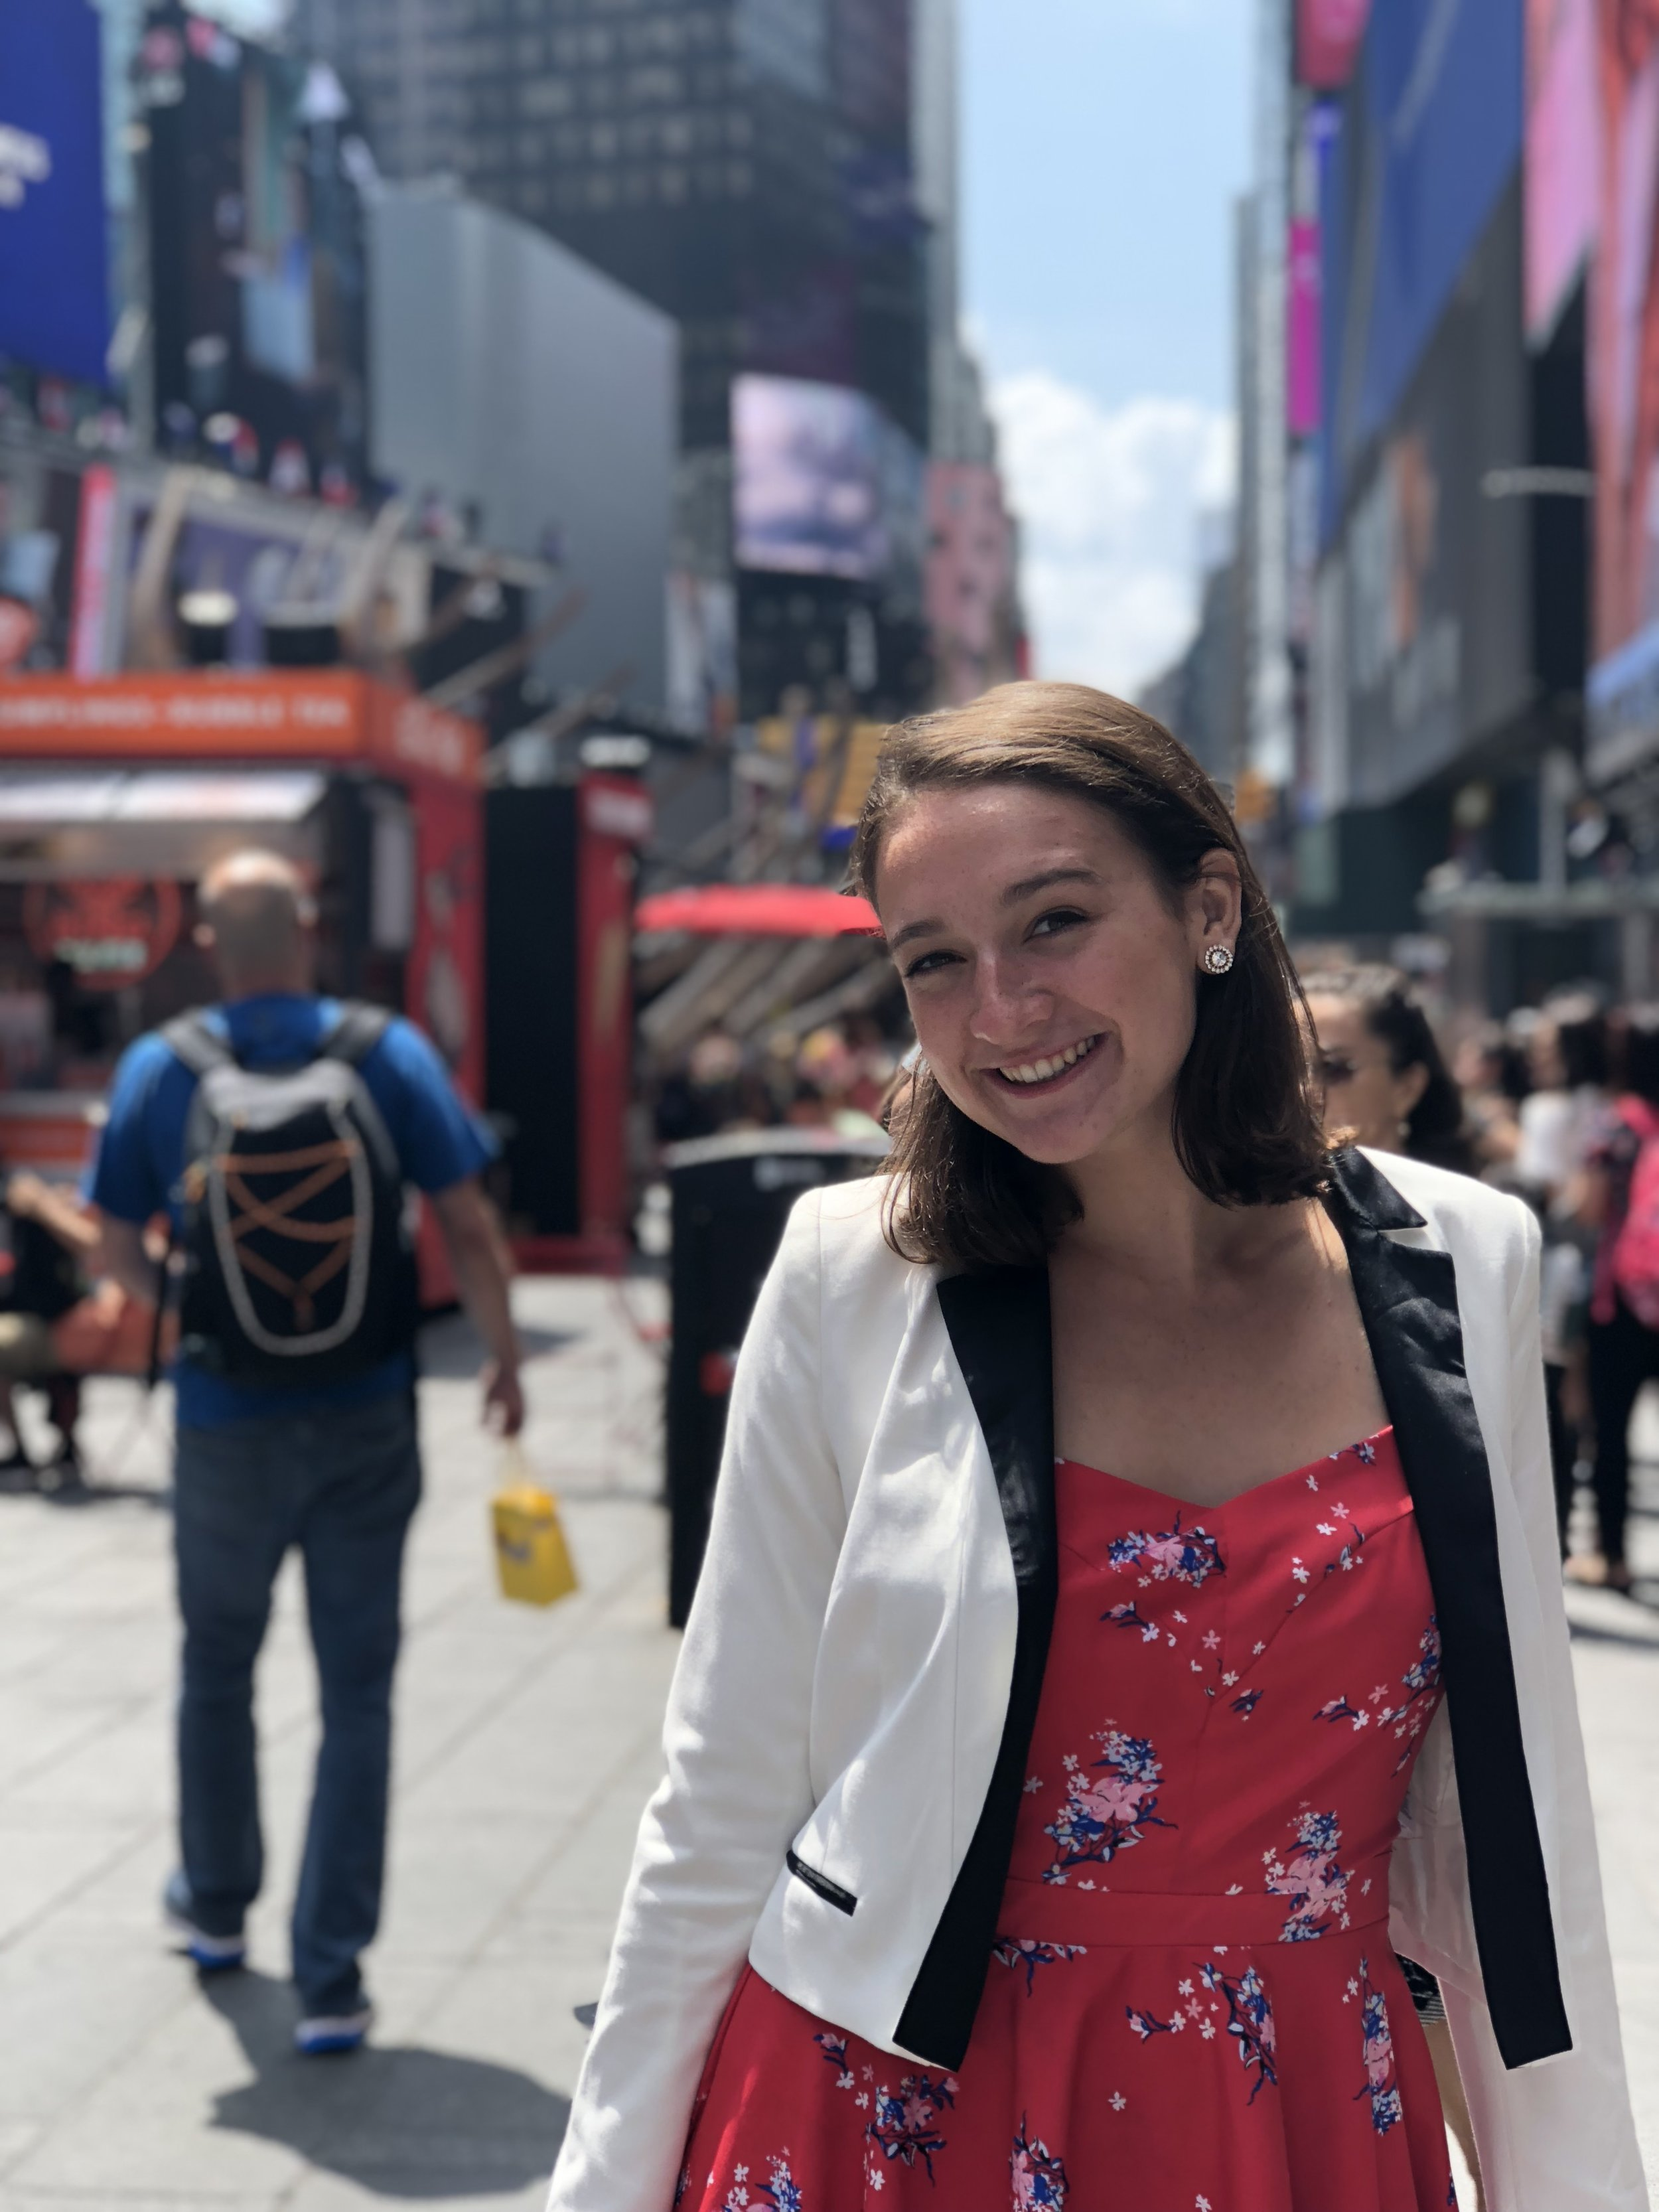 Stephanie Fawell Career Intern she/her - Stephanie is from just outside of Boston, but she is currently studying English at Colby College where she is a rising junior.Current Faves: Billie Eilish, World of Dance, Arya Stark, Roxanne Gay